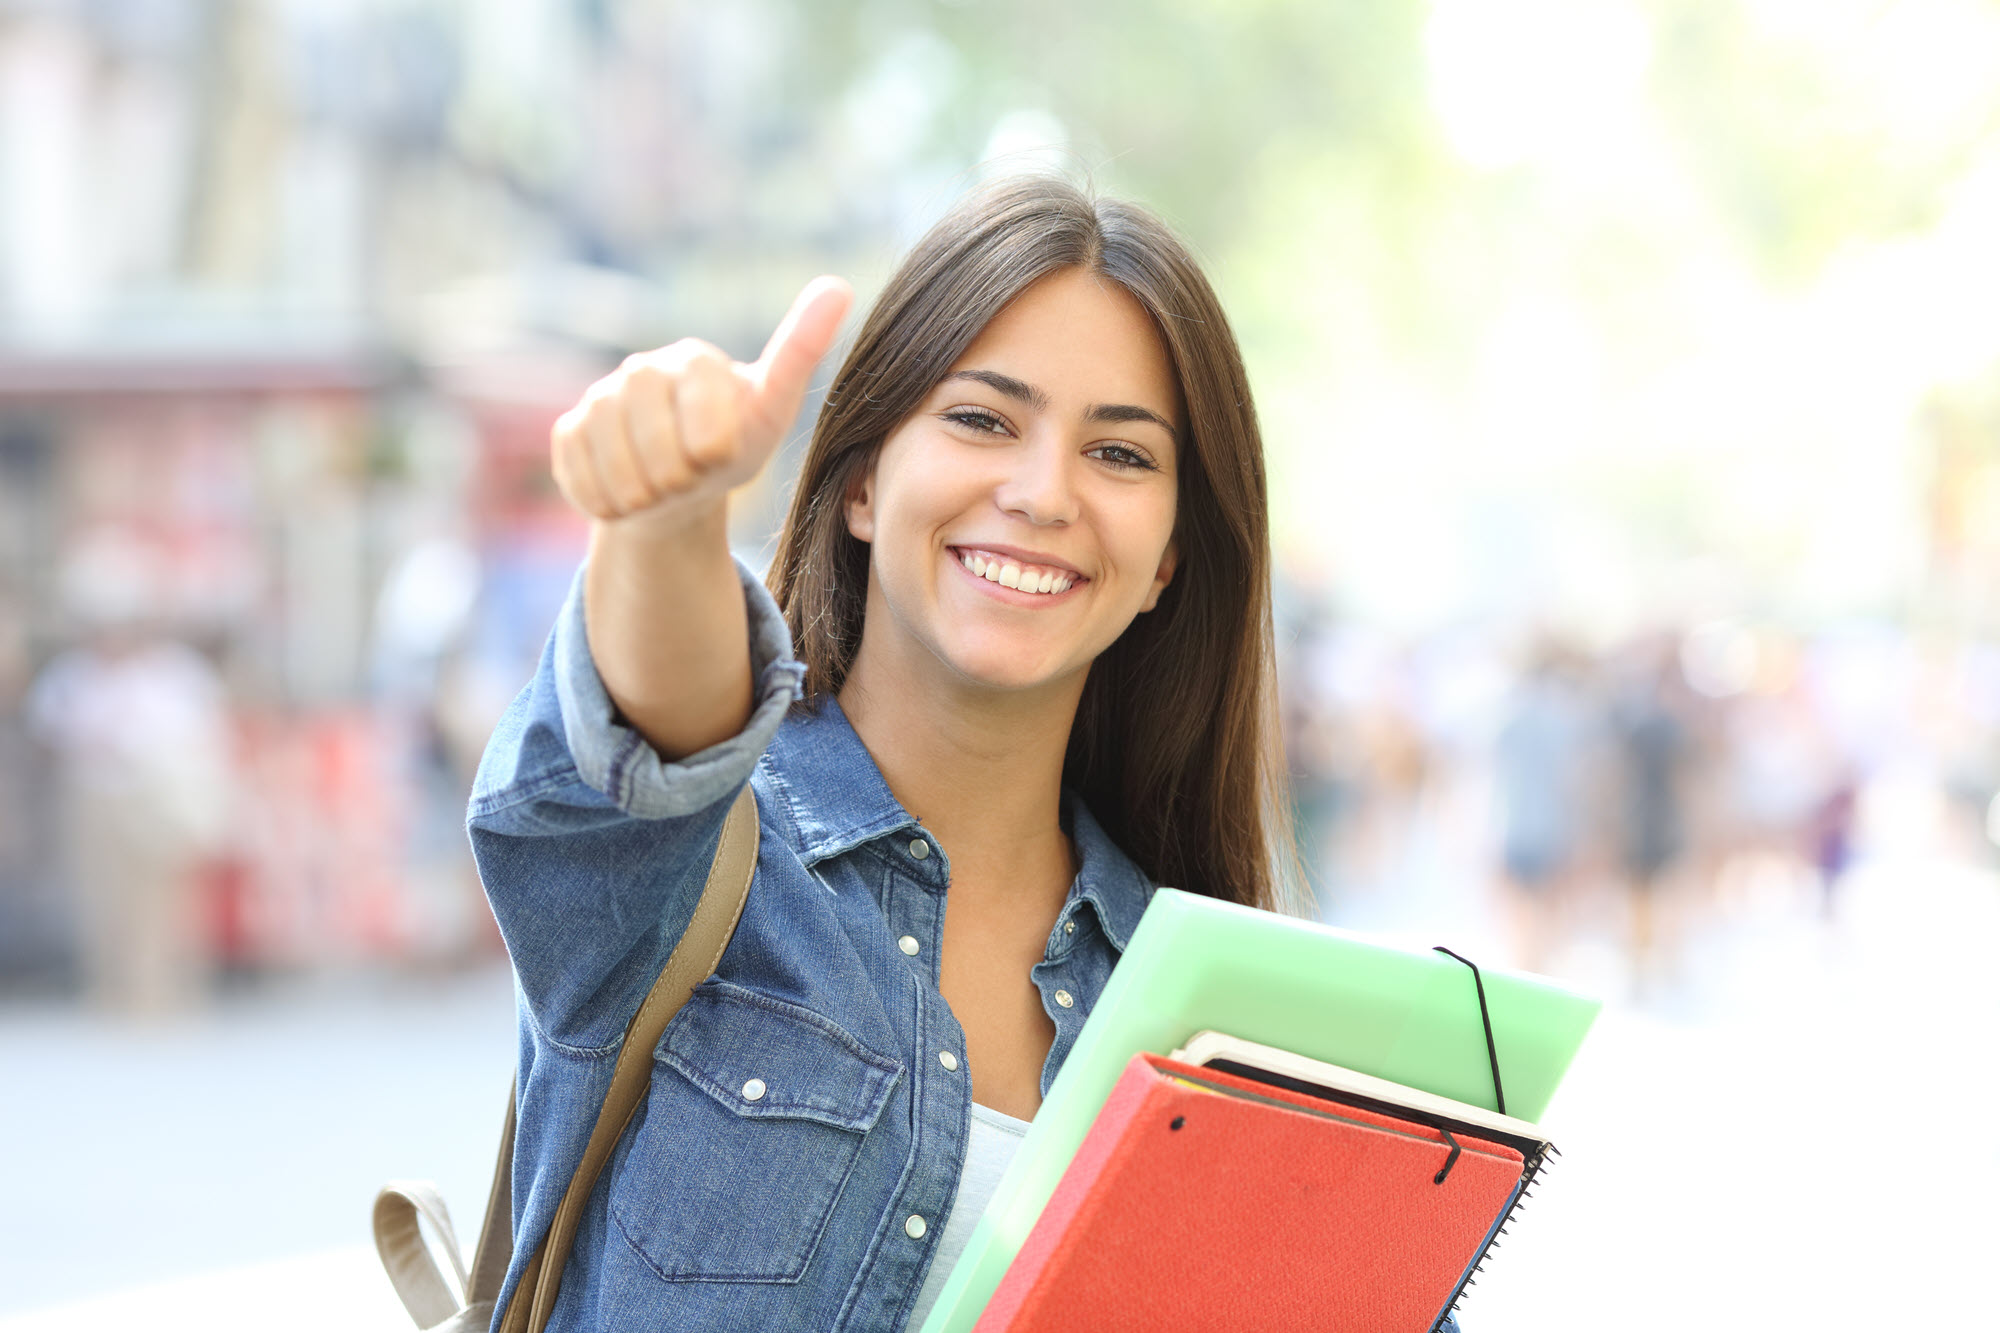 high school girl smiling with thumb up